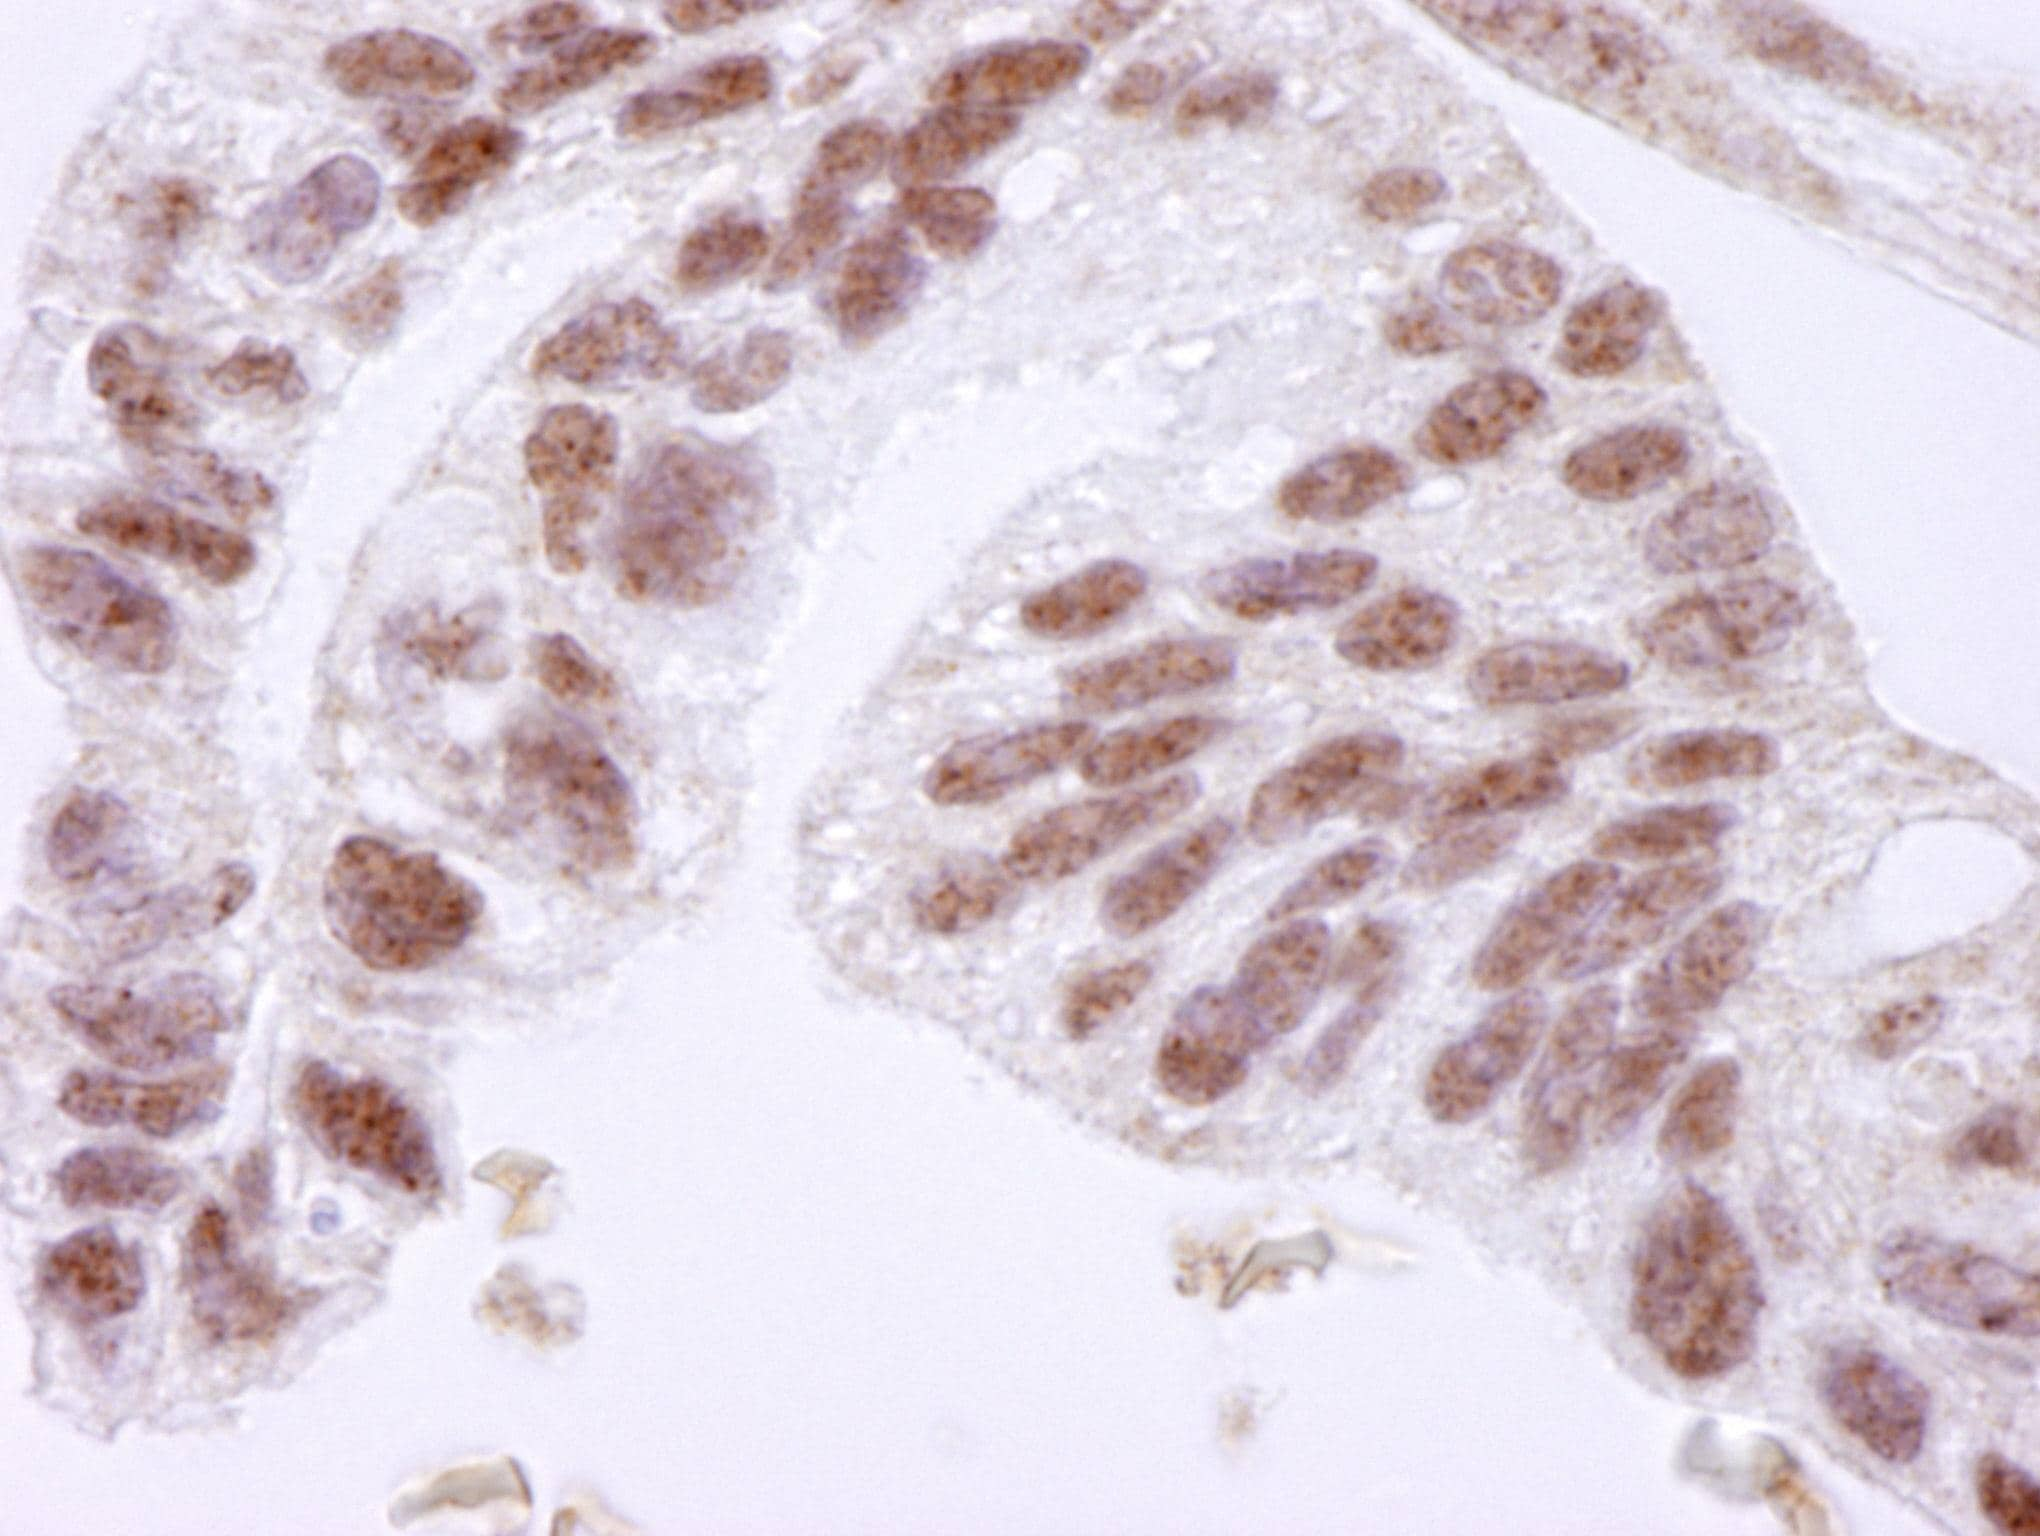 Immunohistochemistry (Formalin/PFA-fixed paraffin-embedded sections) - Anti-CTCF antibody (ab84372)